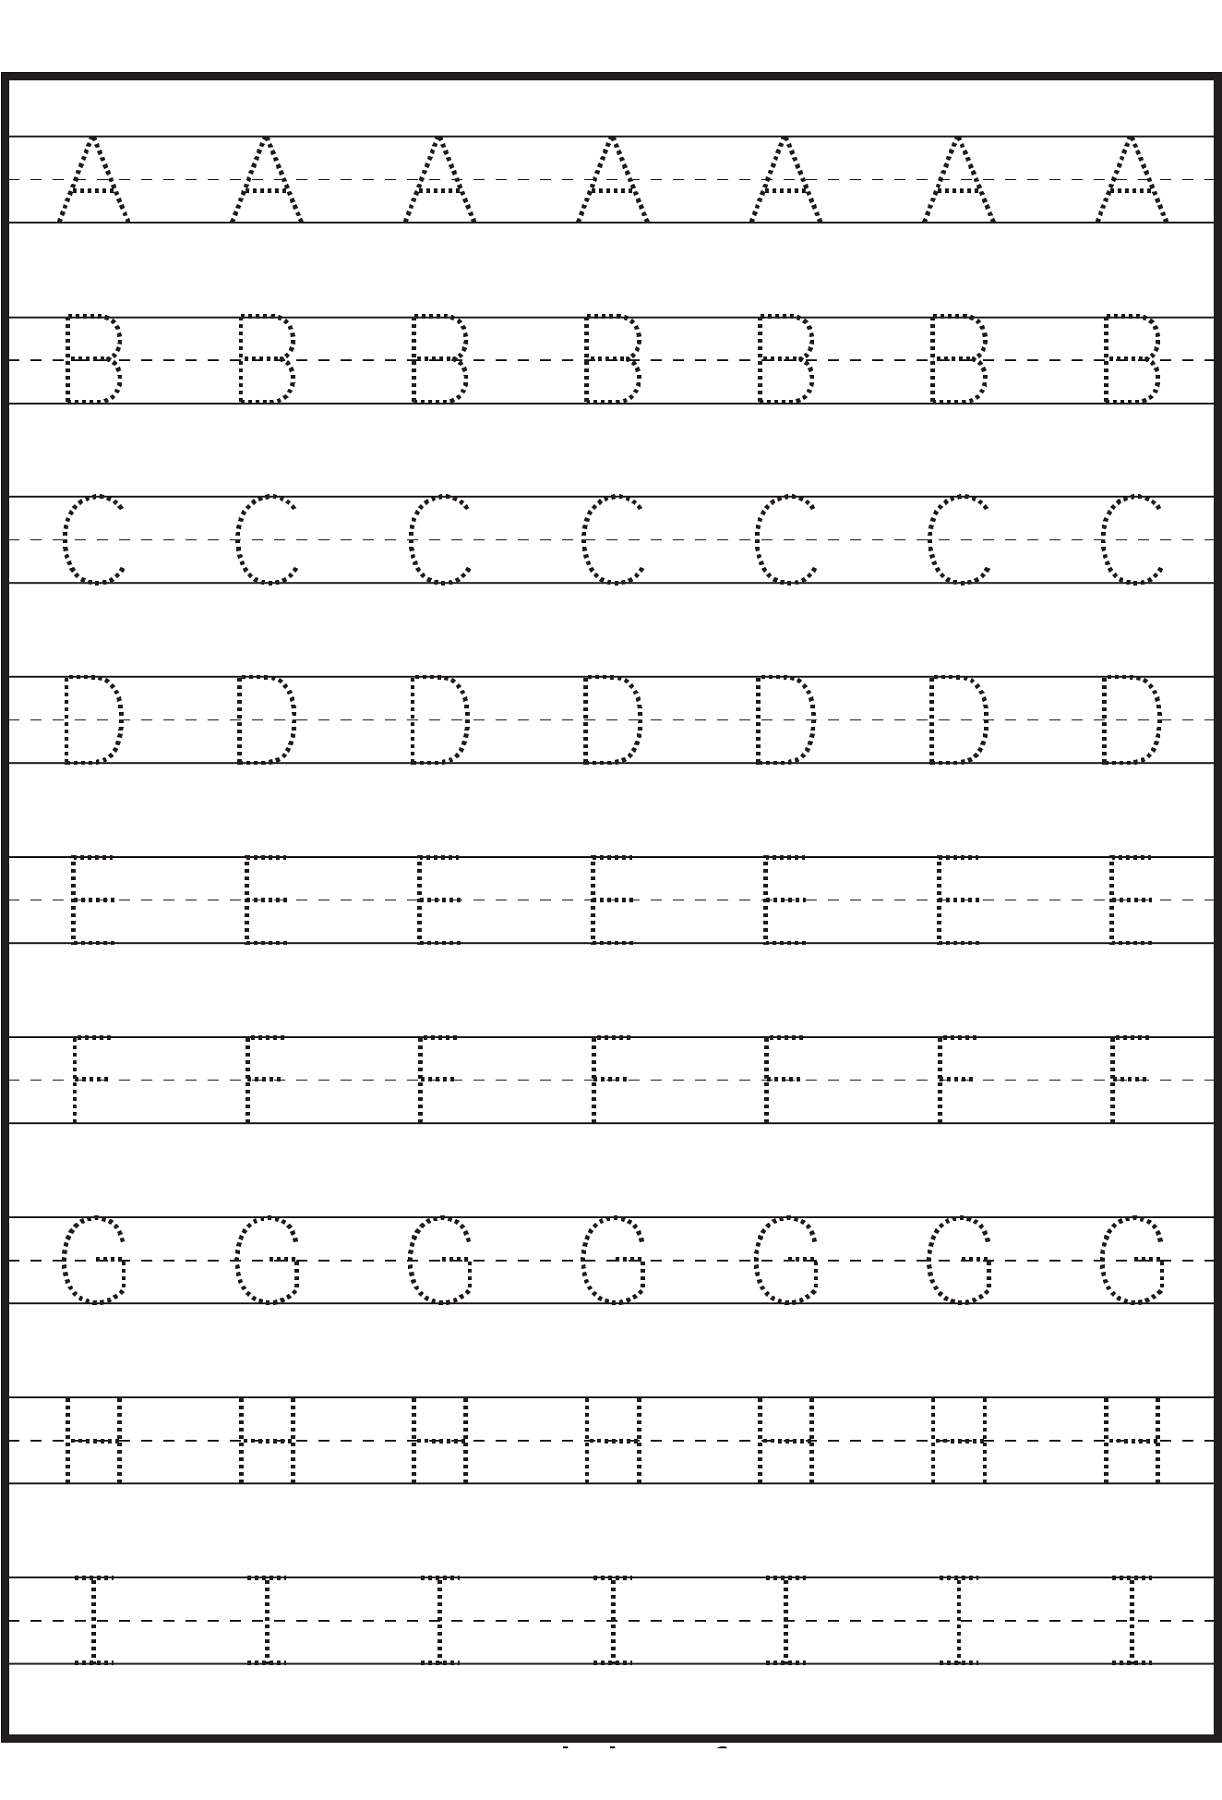 worksheet Abc Printable Worksheets pin by sarah boisselle on kid activities pinterest help your kids learning abc in fun way these traceable letter worksheets to print will learn letters easy and